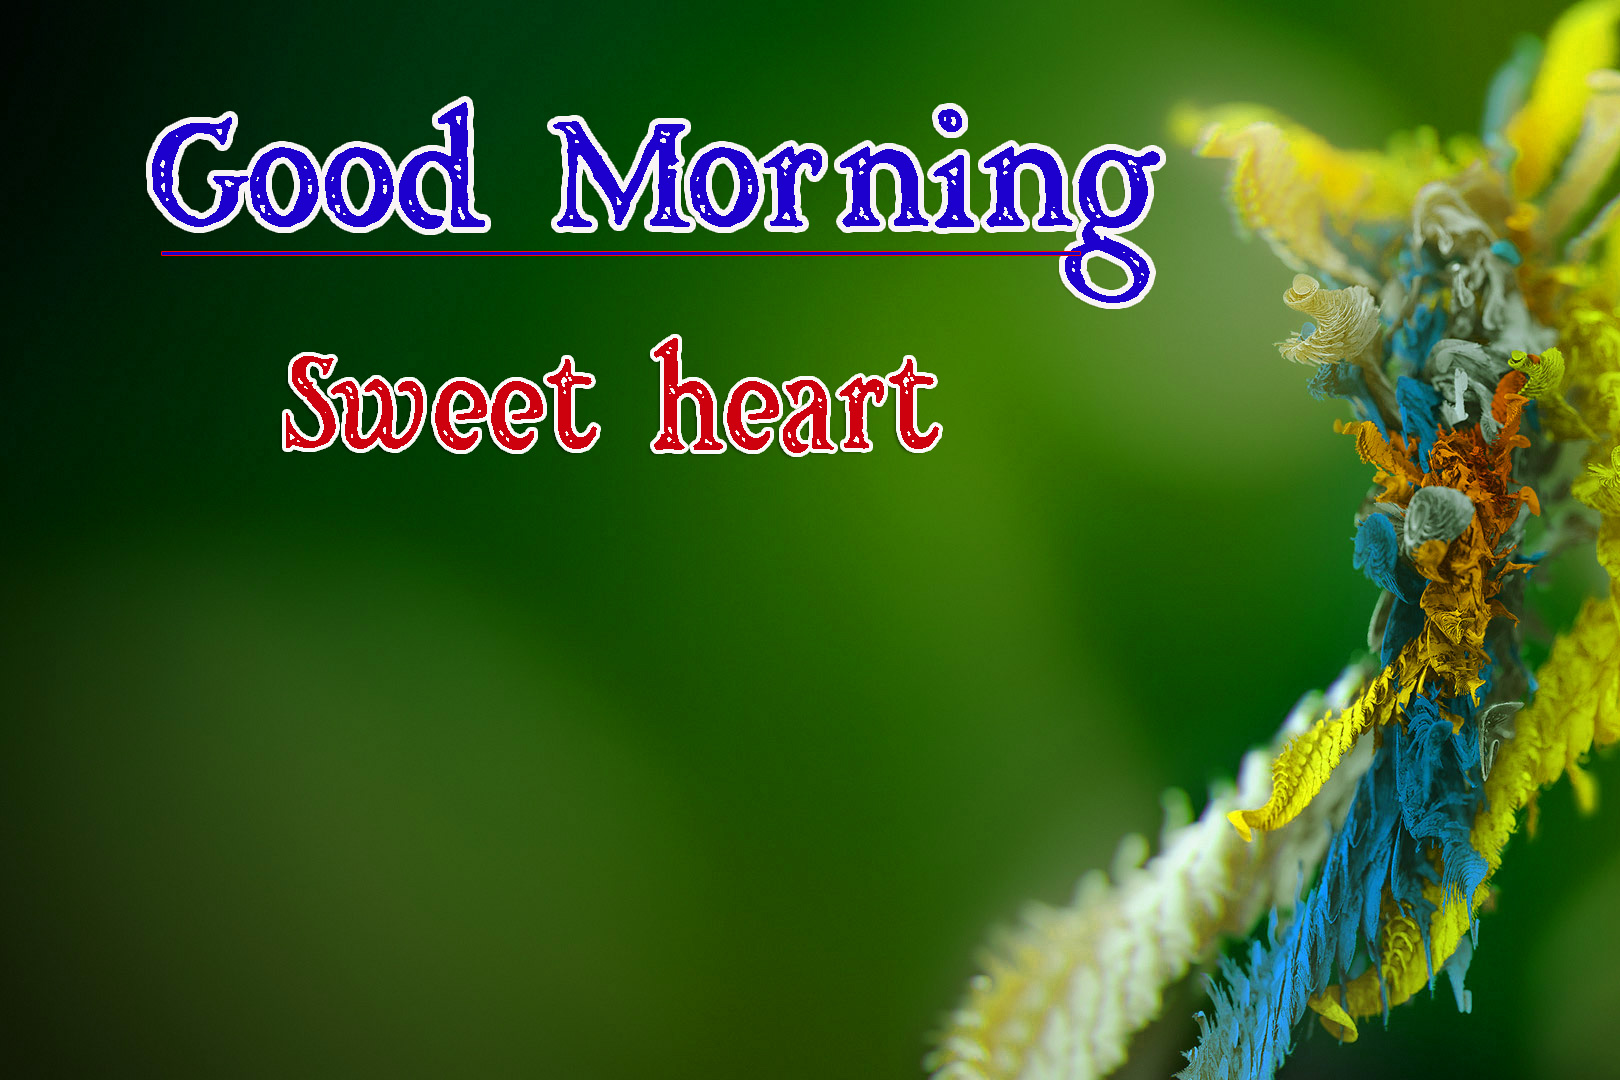 Very Good Morning Images Pics Download Free